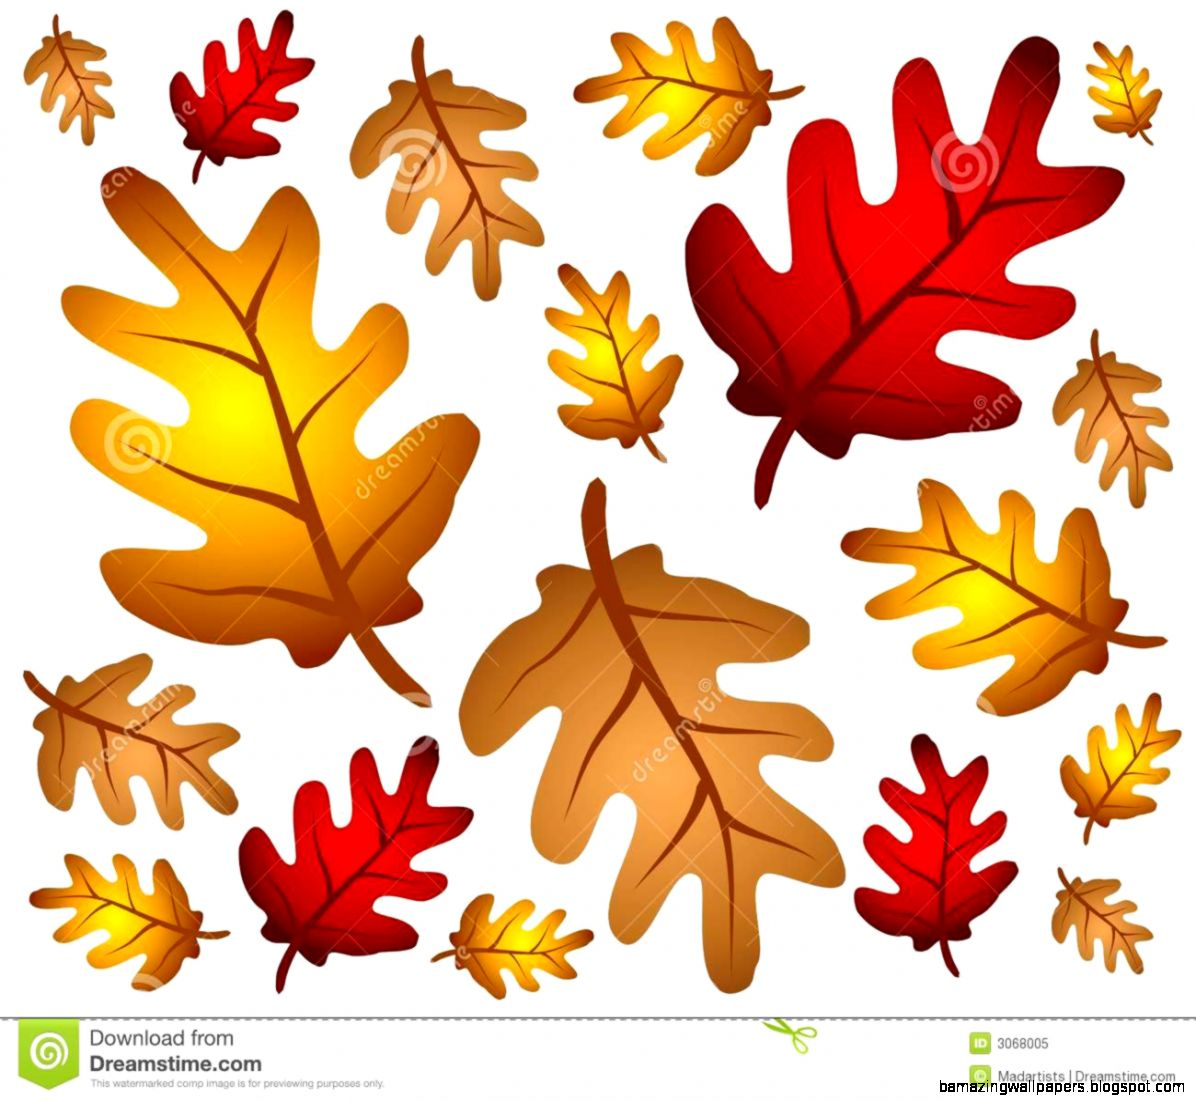 Autumn Oak Leaves Background Royalty Free Stock Photo   Image 3068005